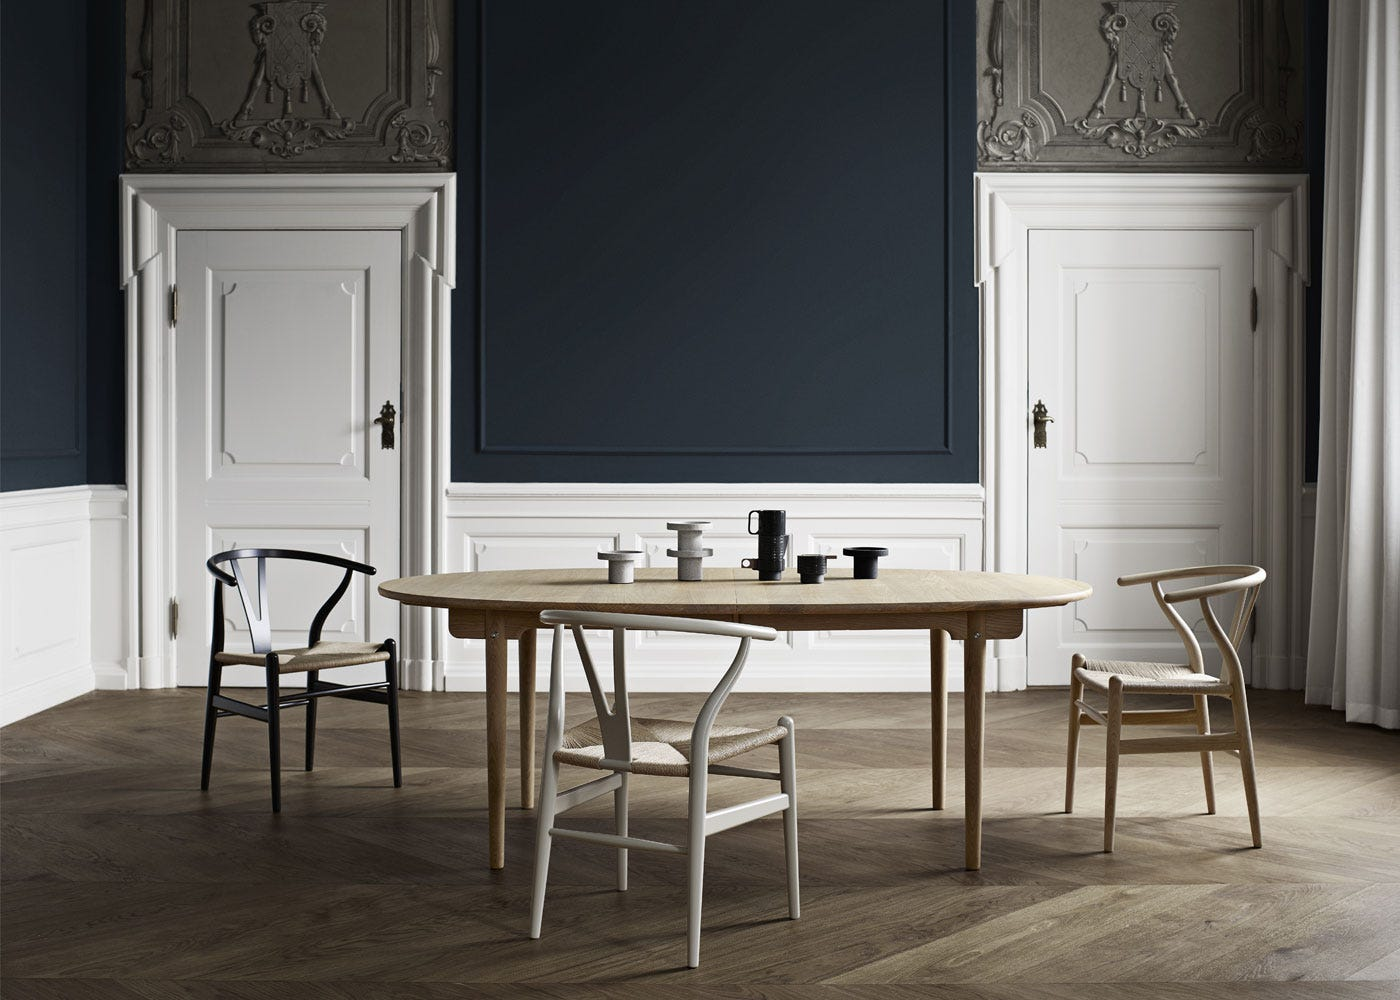 As shown: CH338 extending dining table soaped oak finish, CH24 wishbone dining chairs.